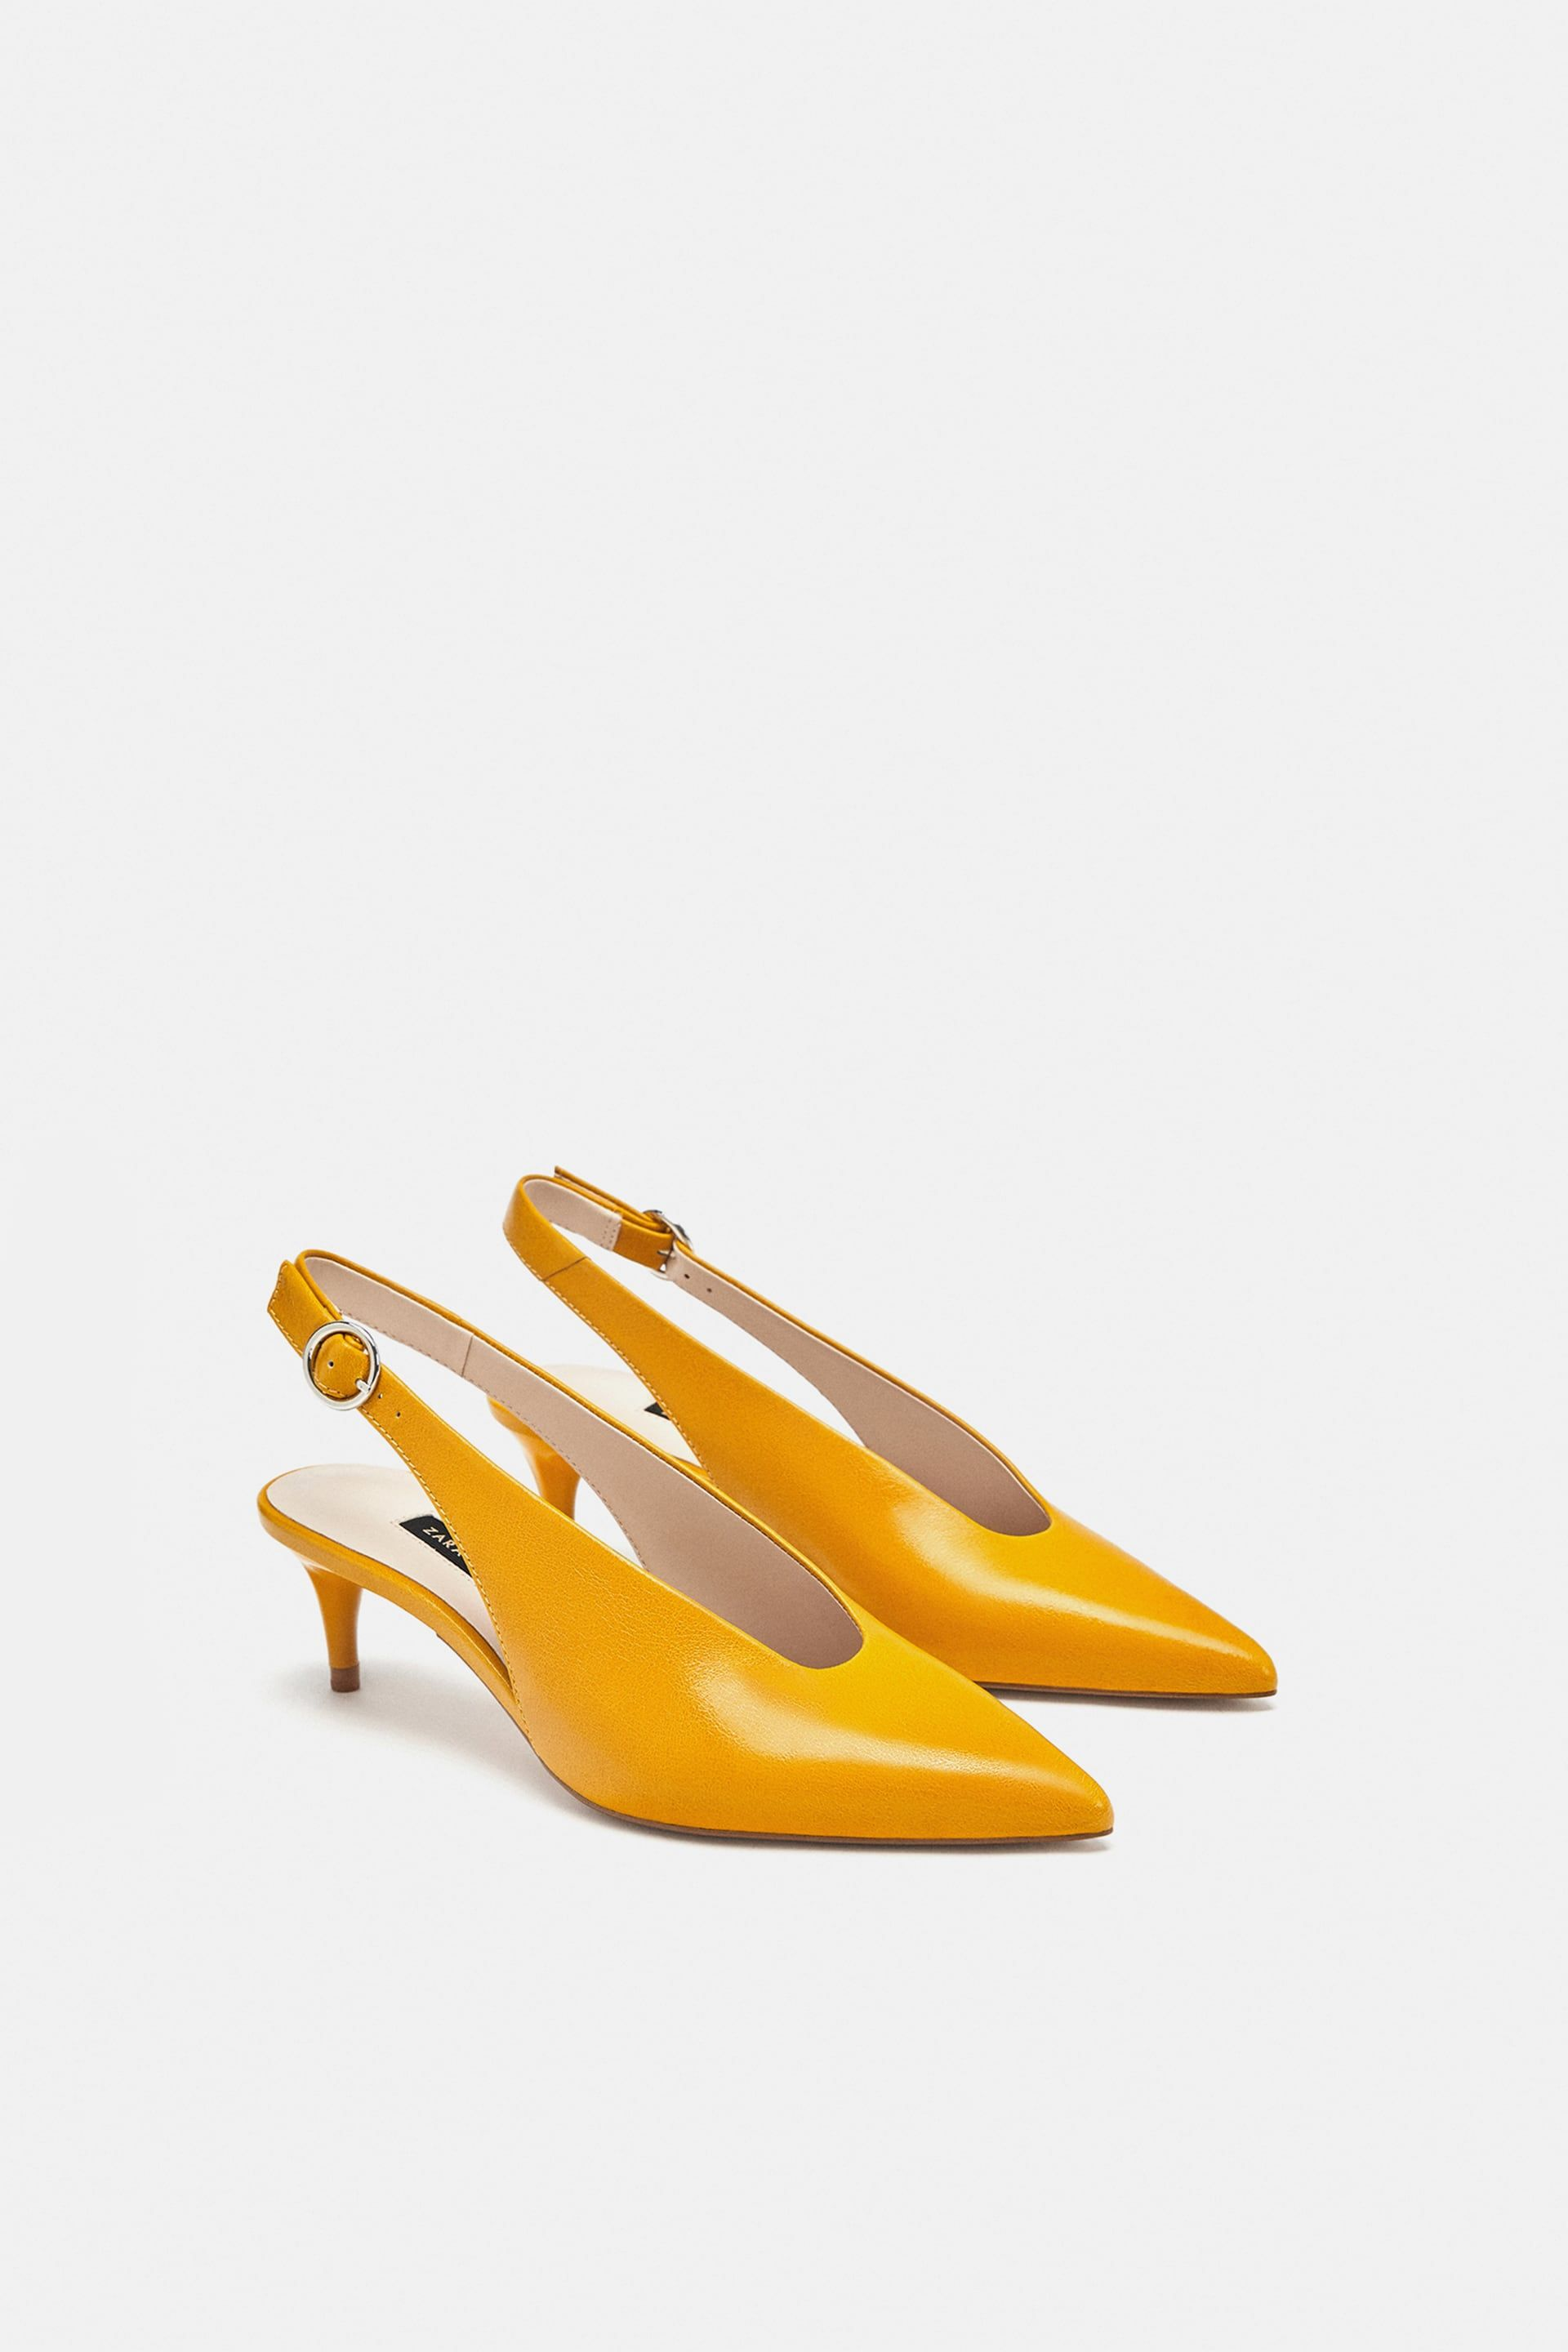 c3585b9e6b9 Image 1 of LEATHER SLINGBACK HEELS from Zara